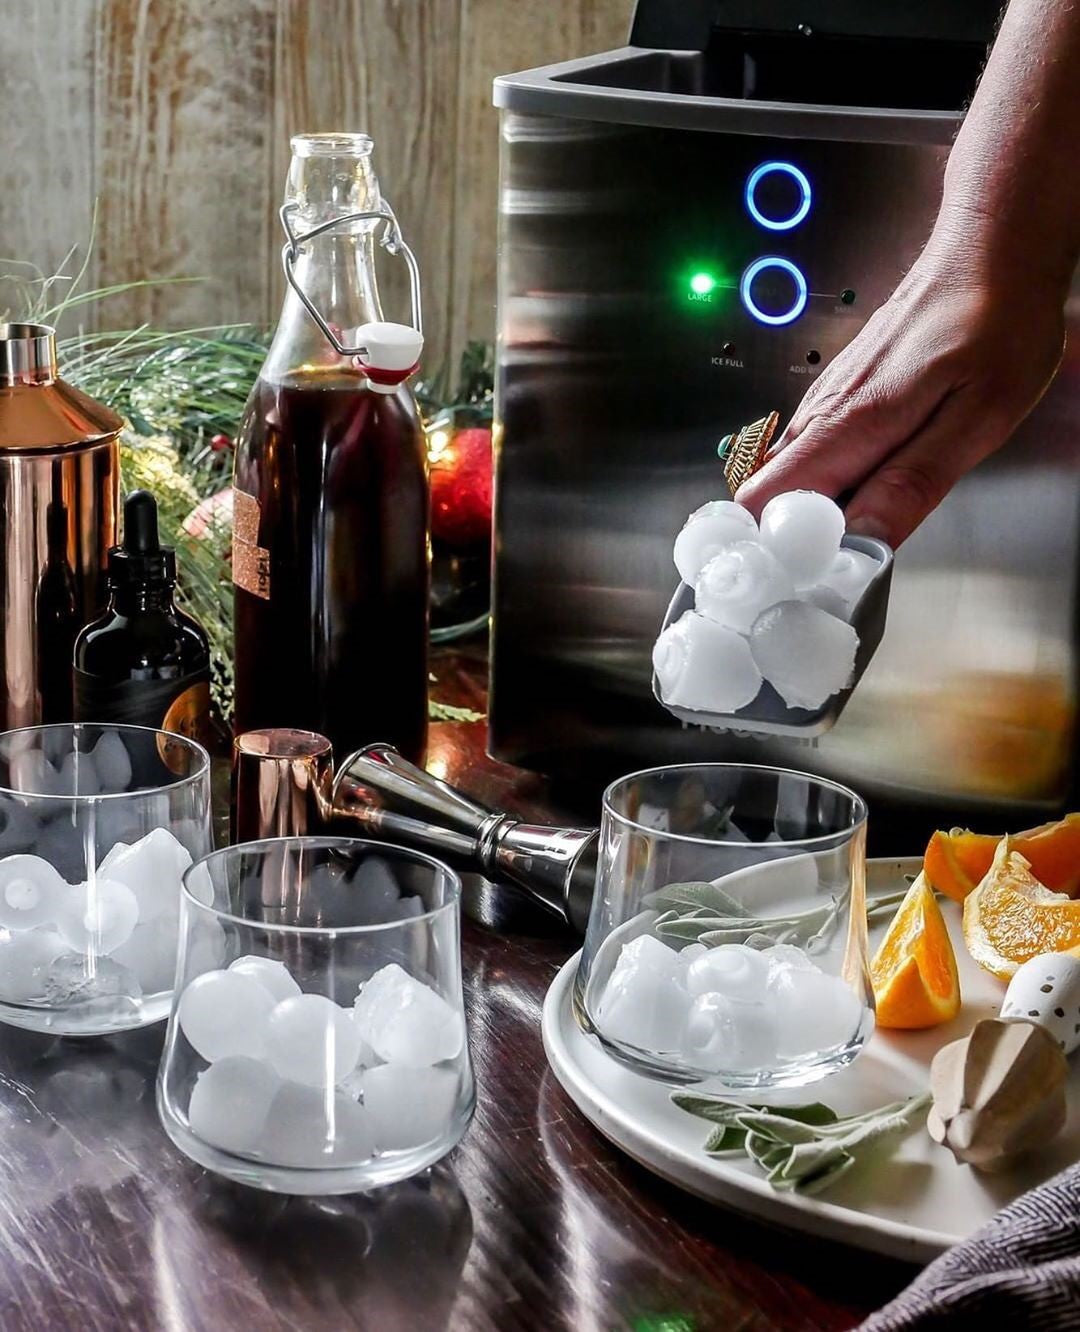 Choosing The Best Portable Ice Maker For Your Home